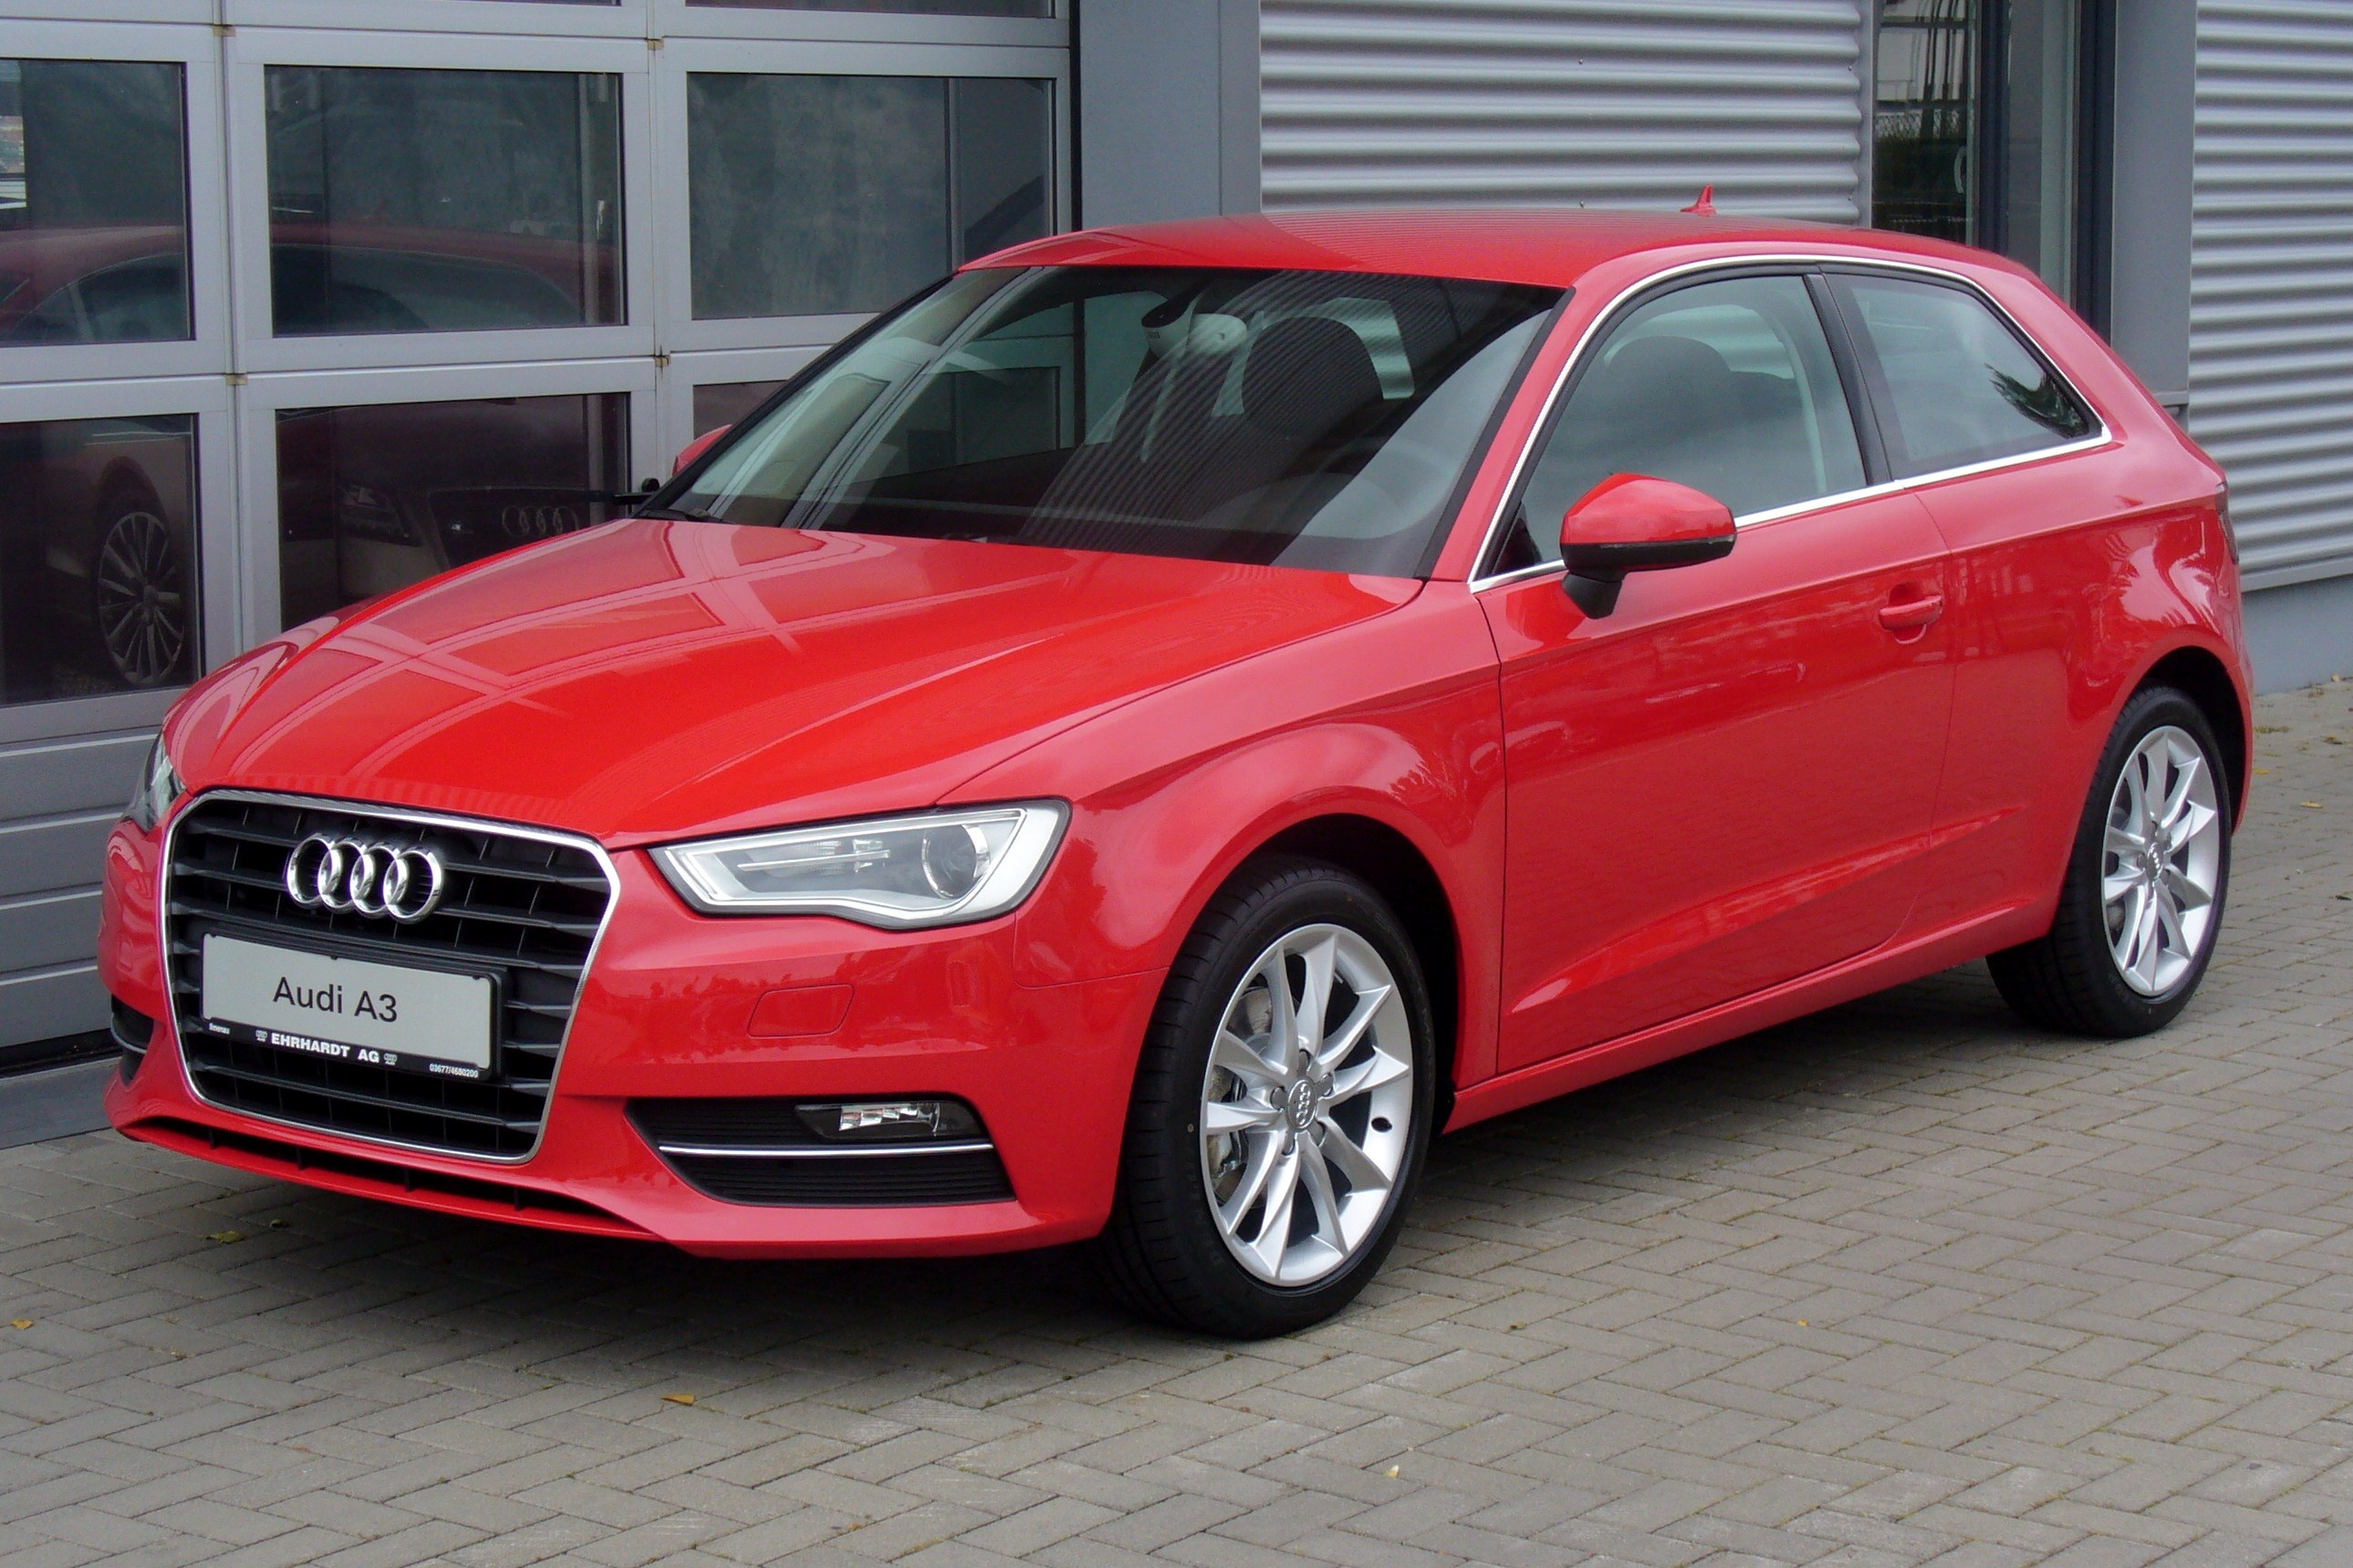 2012 audi a3 8v pictures information and specs auto. Black Bedroom Furniture Sets. Home Design Ideas